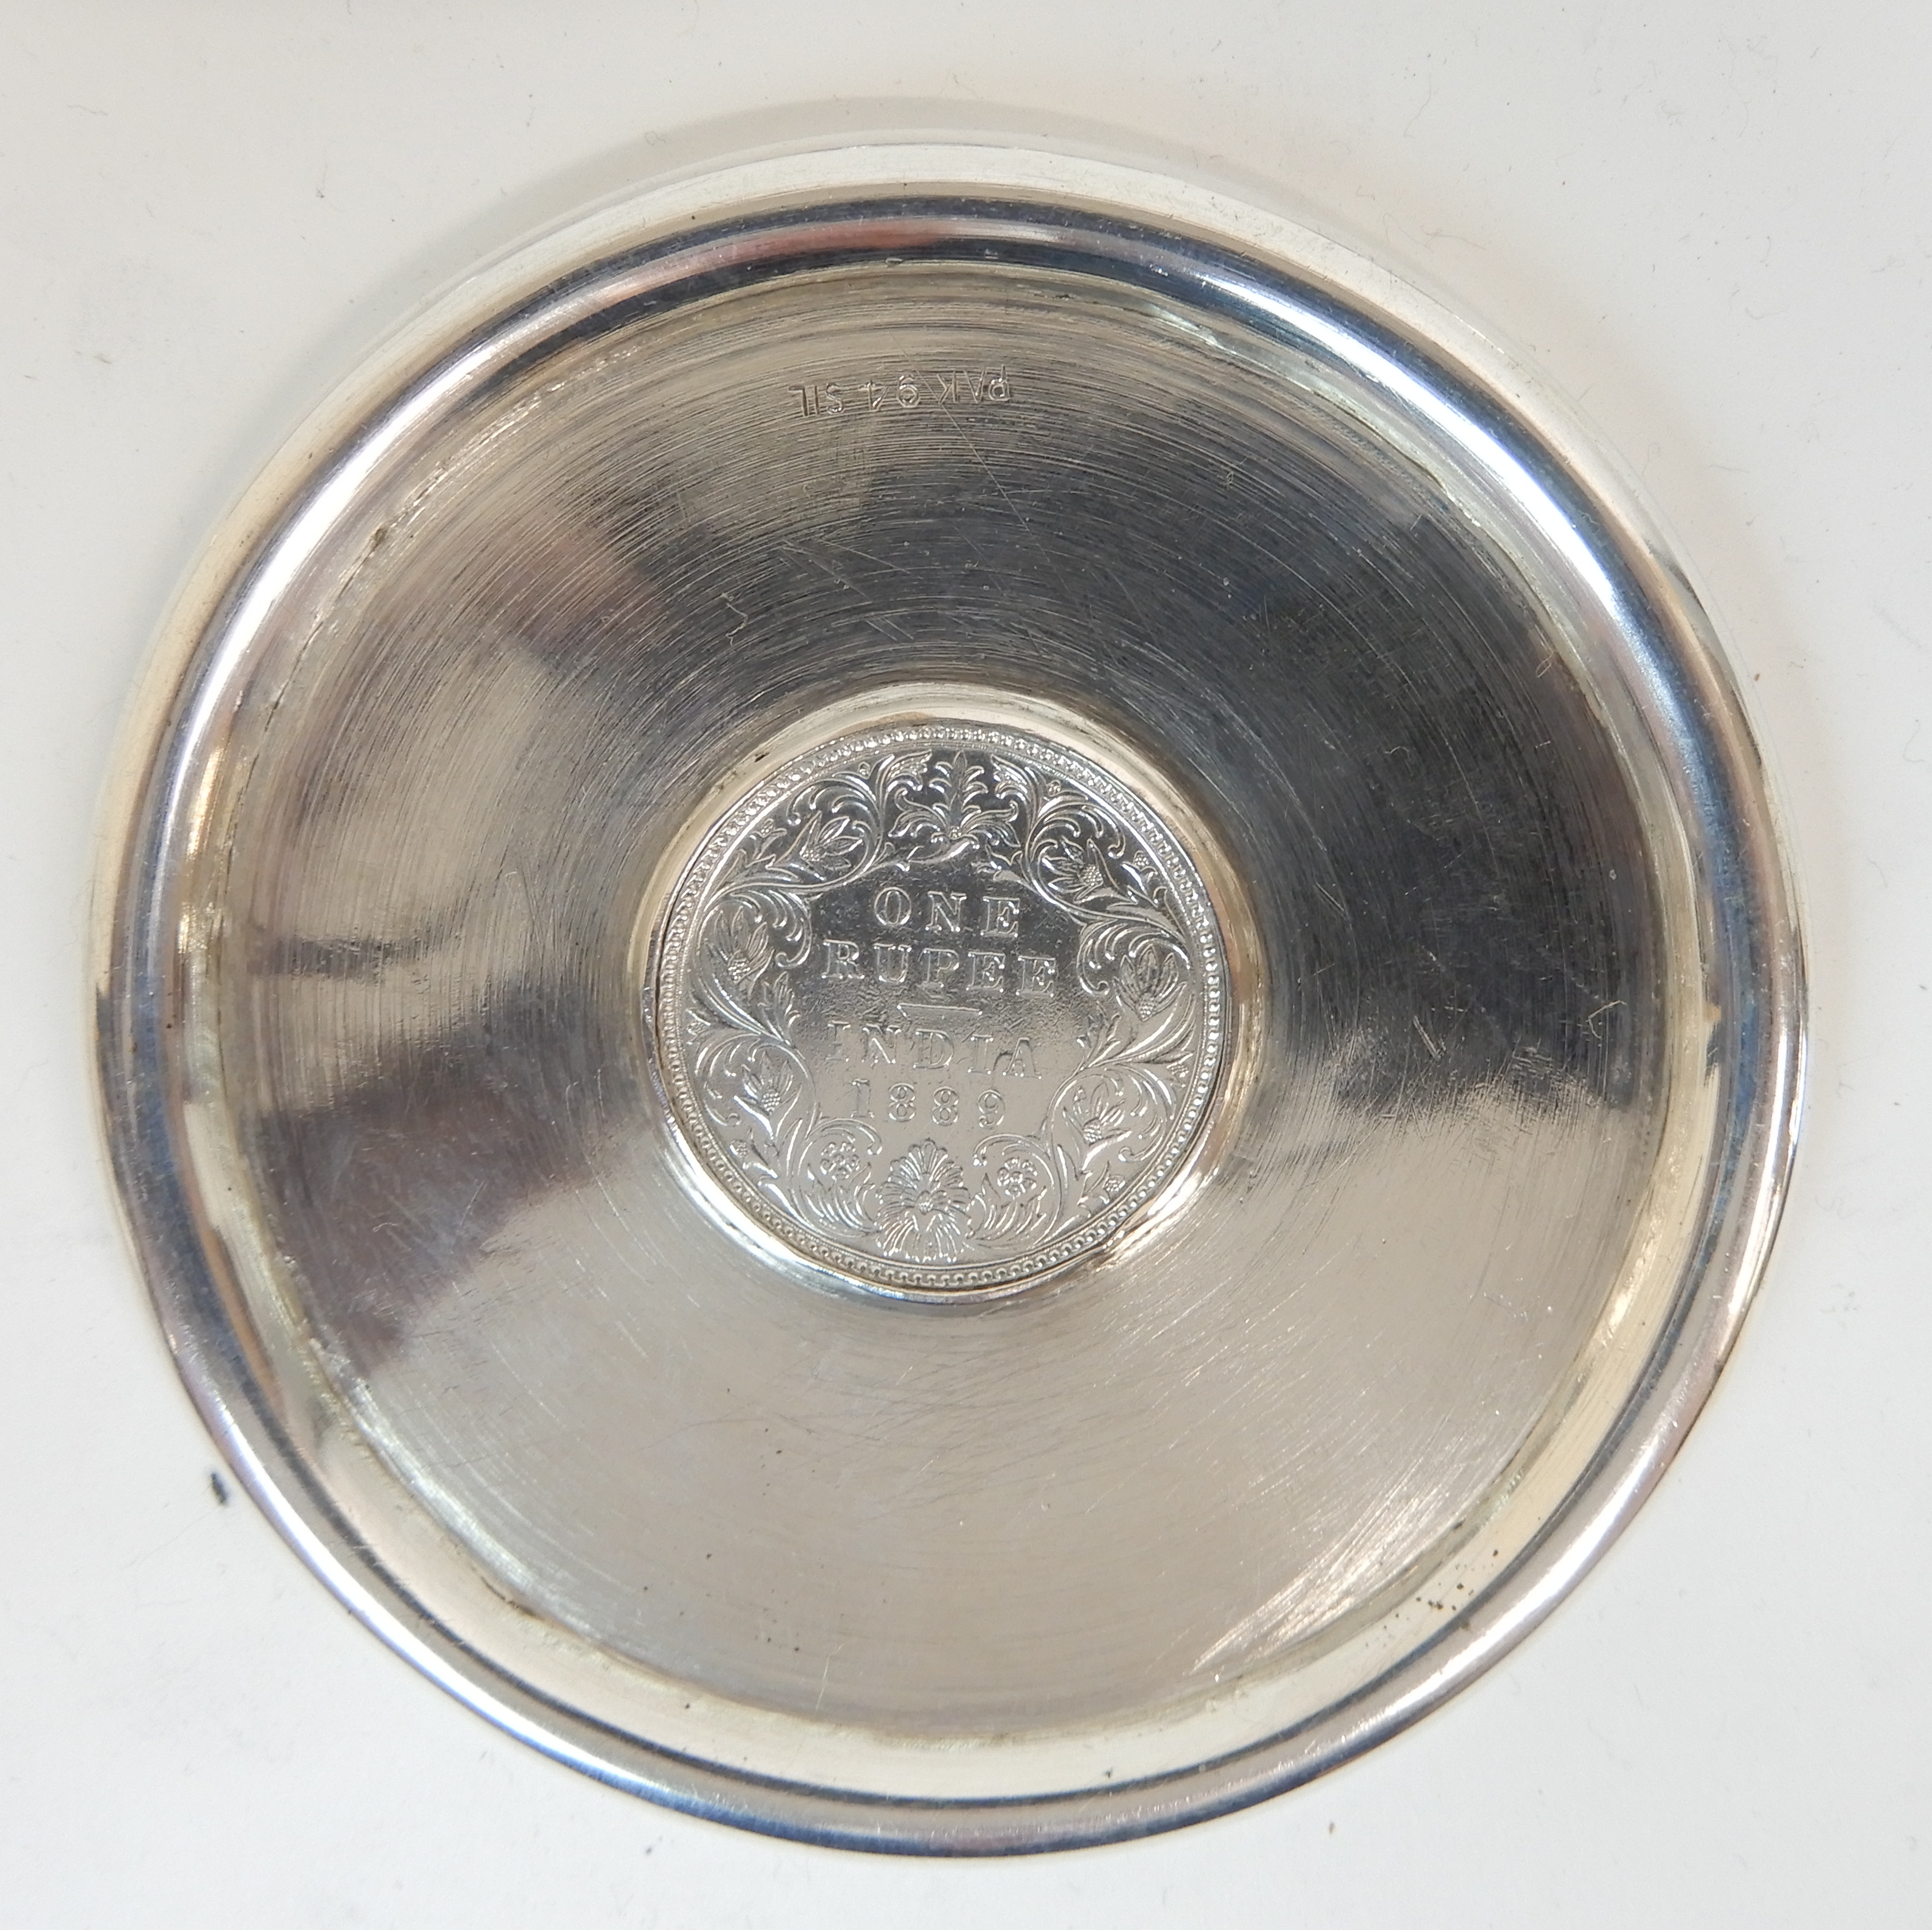 Lot 131 - A SET OF EIGHT EASTERN SILVER COASTERS marked PAK 94 SIL., of circular form with raised edge, each